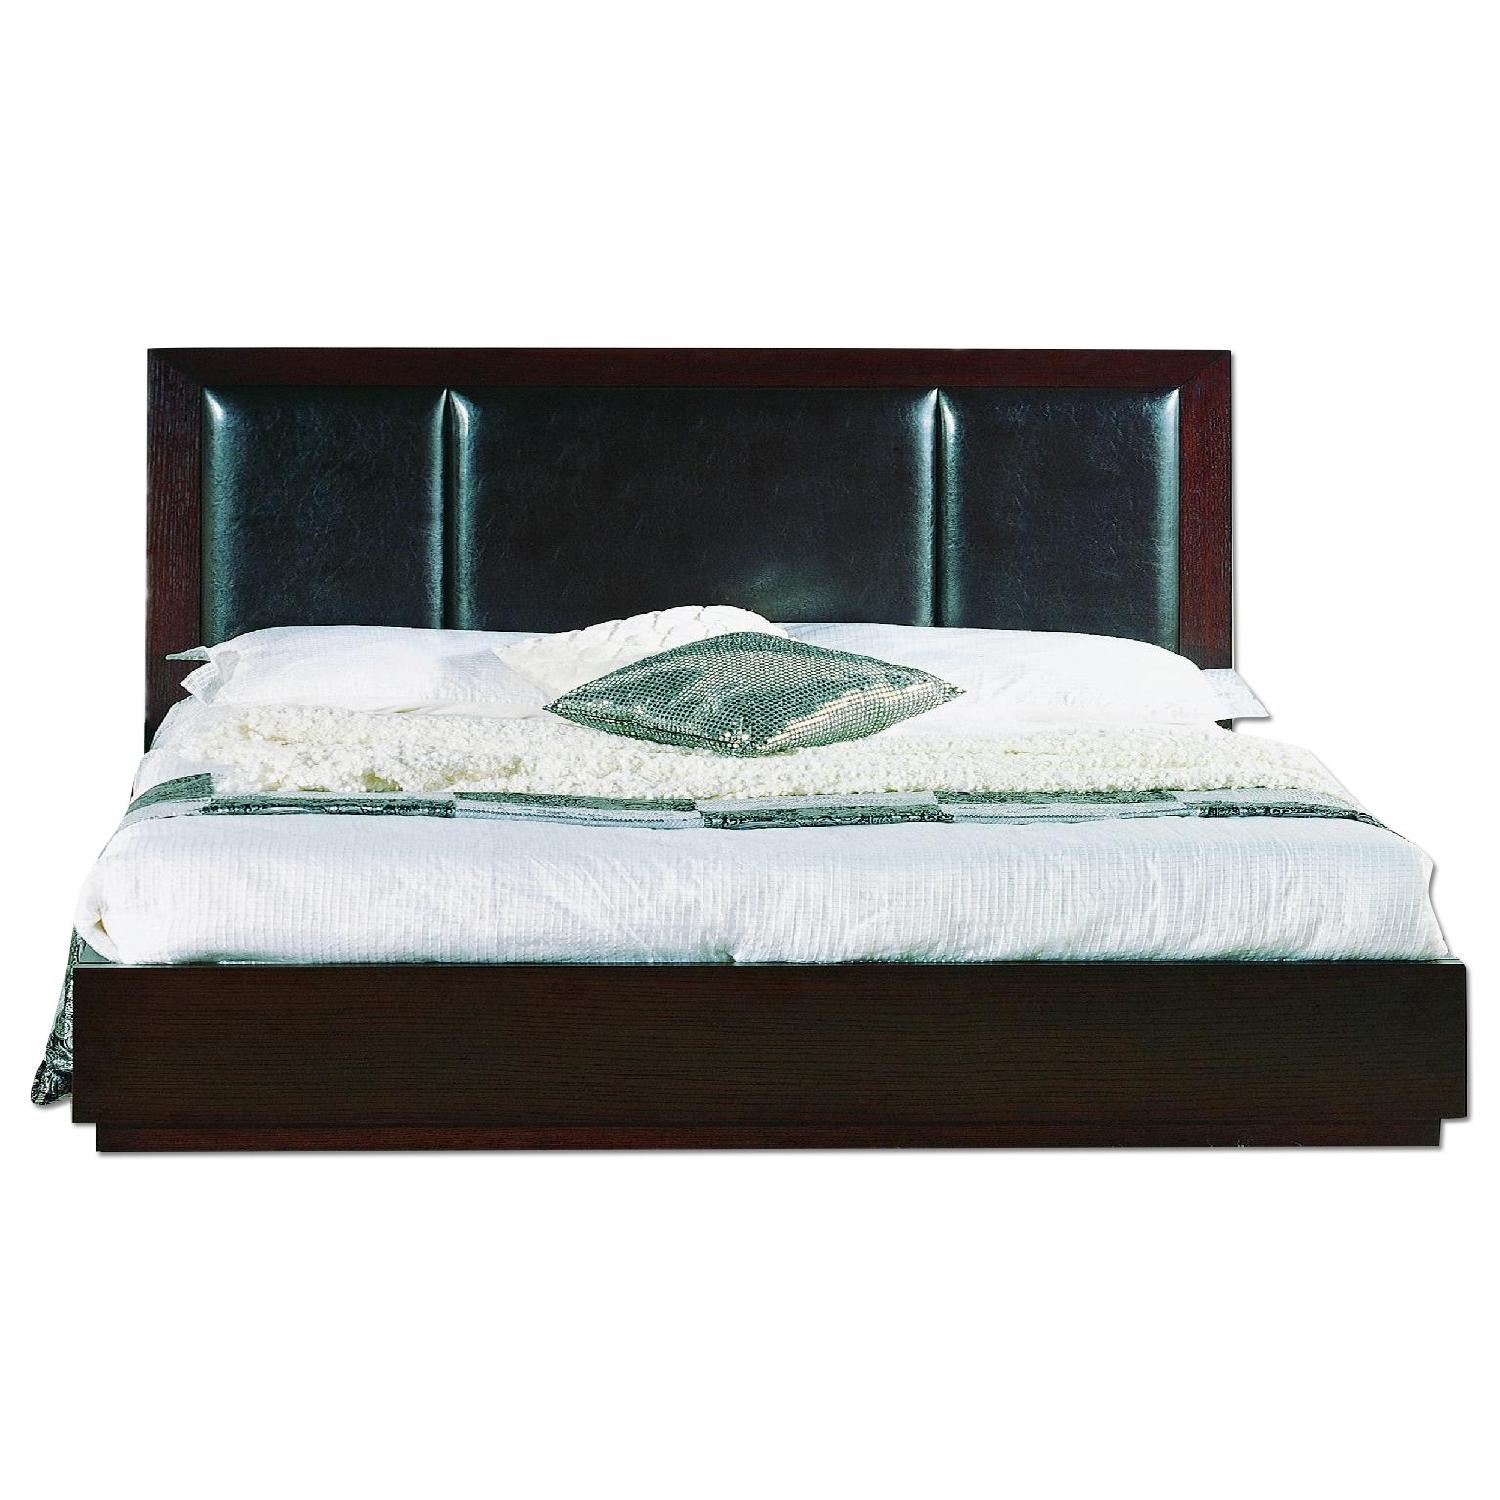 King Size Modern Platform Bed in Wenge Finish w/ 6 Storage Drawers & Padded PU Headboard